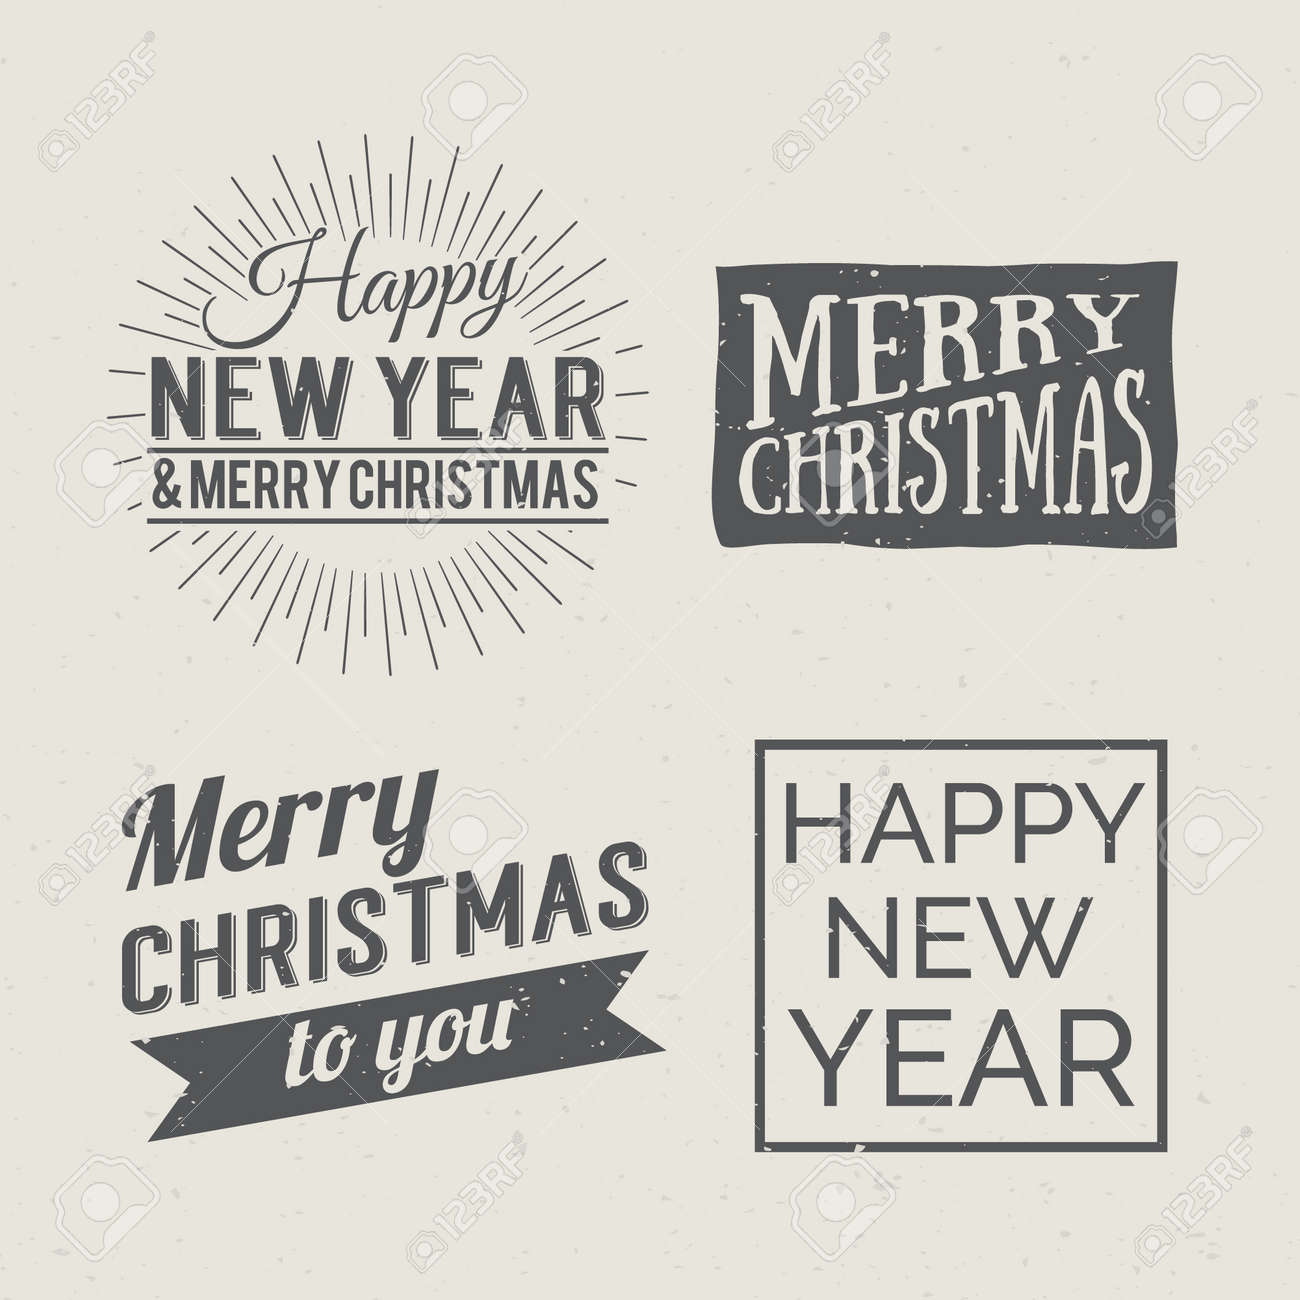 merry christmas and happy new year calligraphic design label on grunge background holidays lettering for